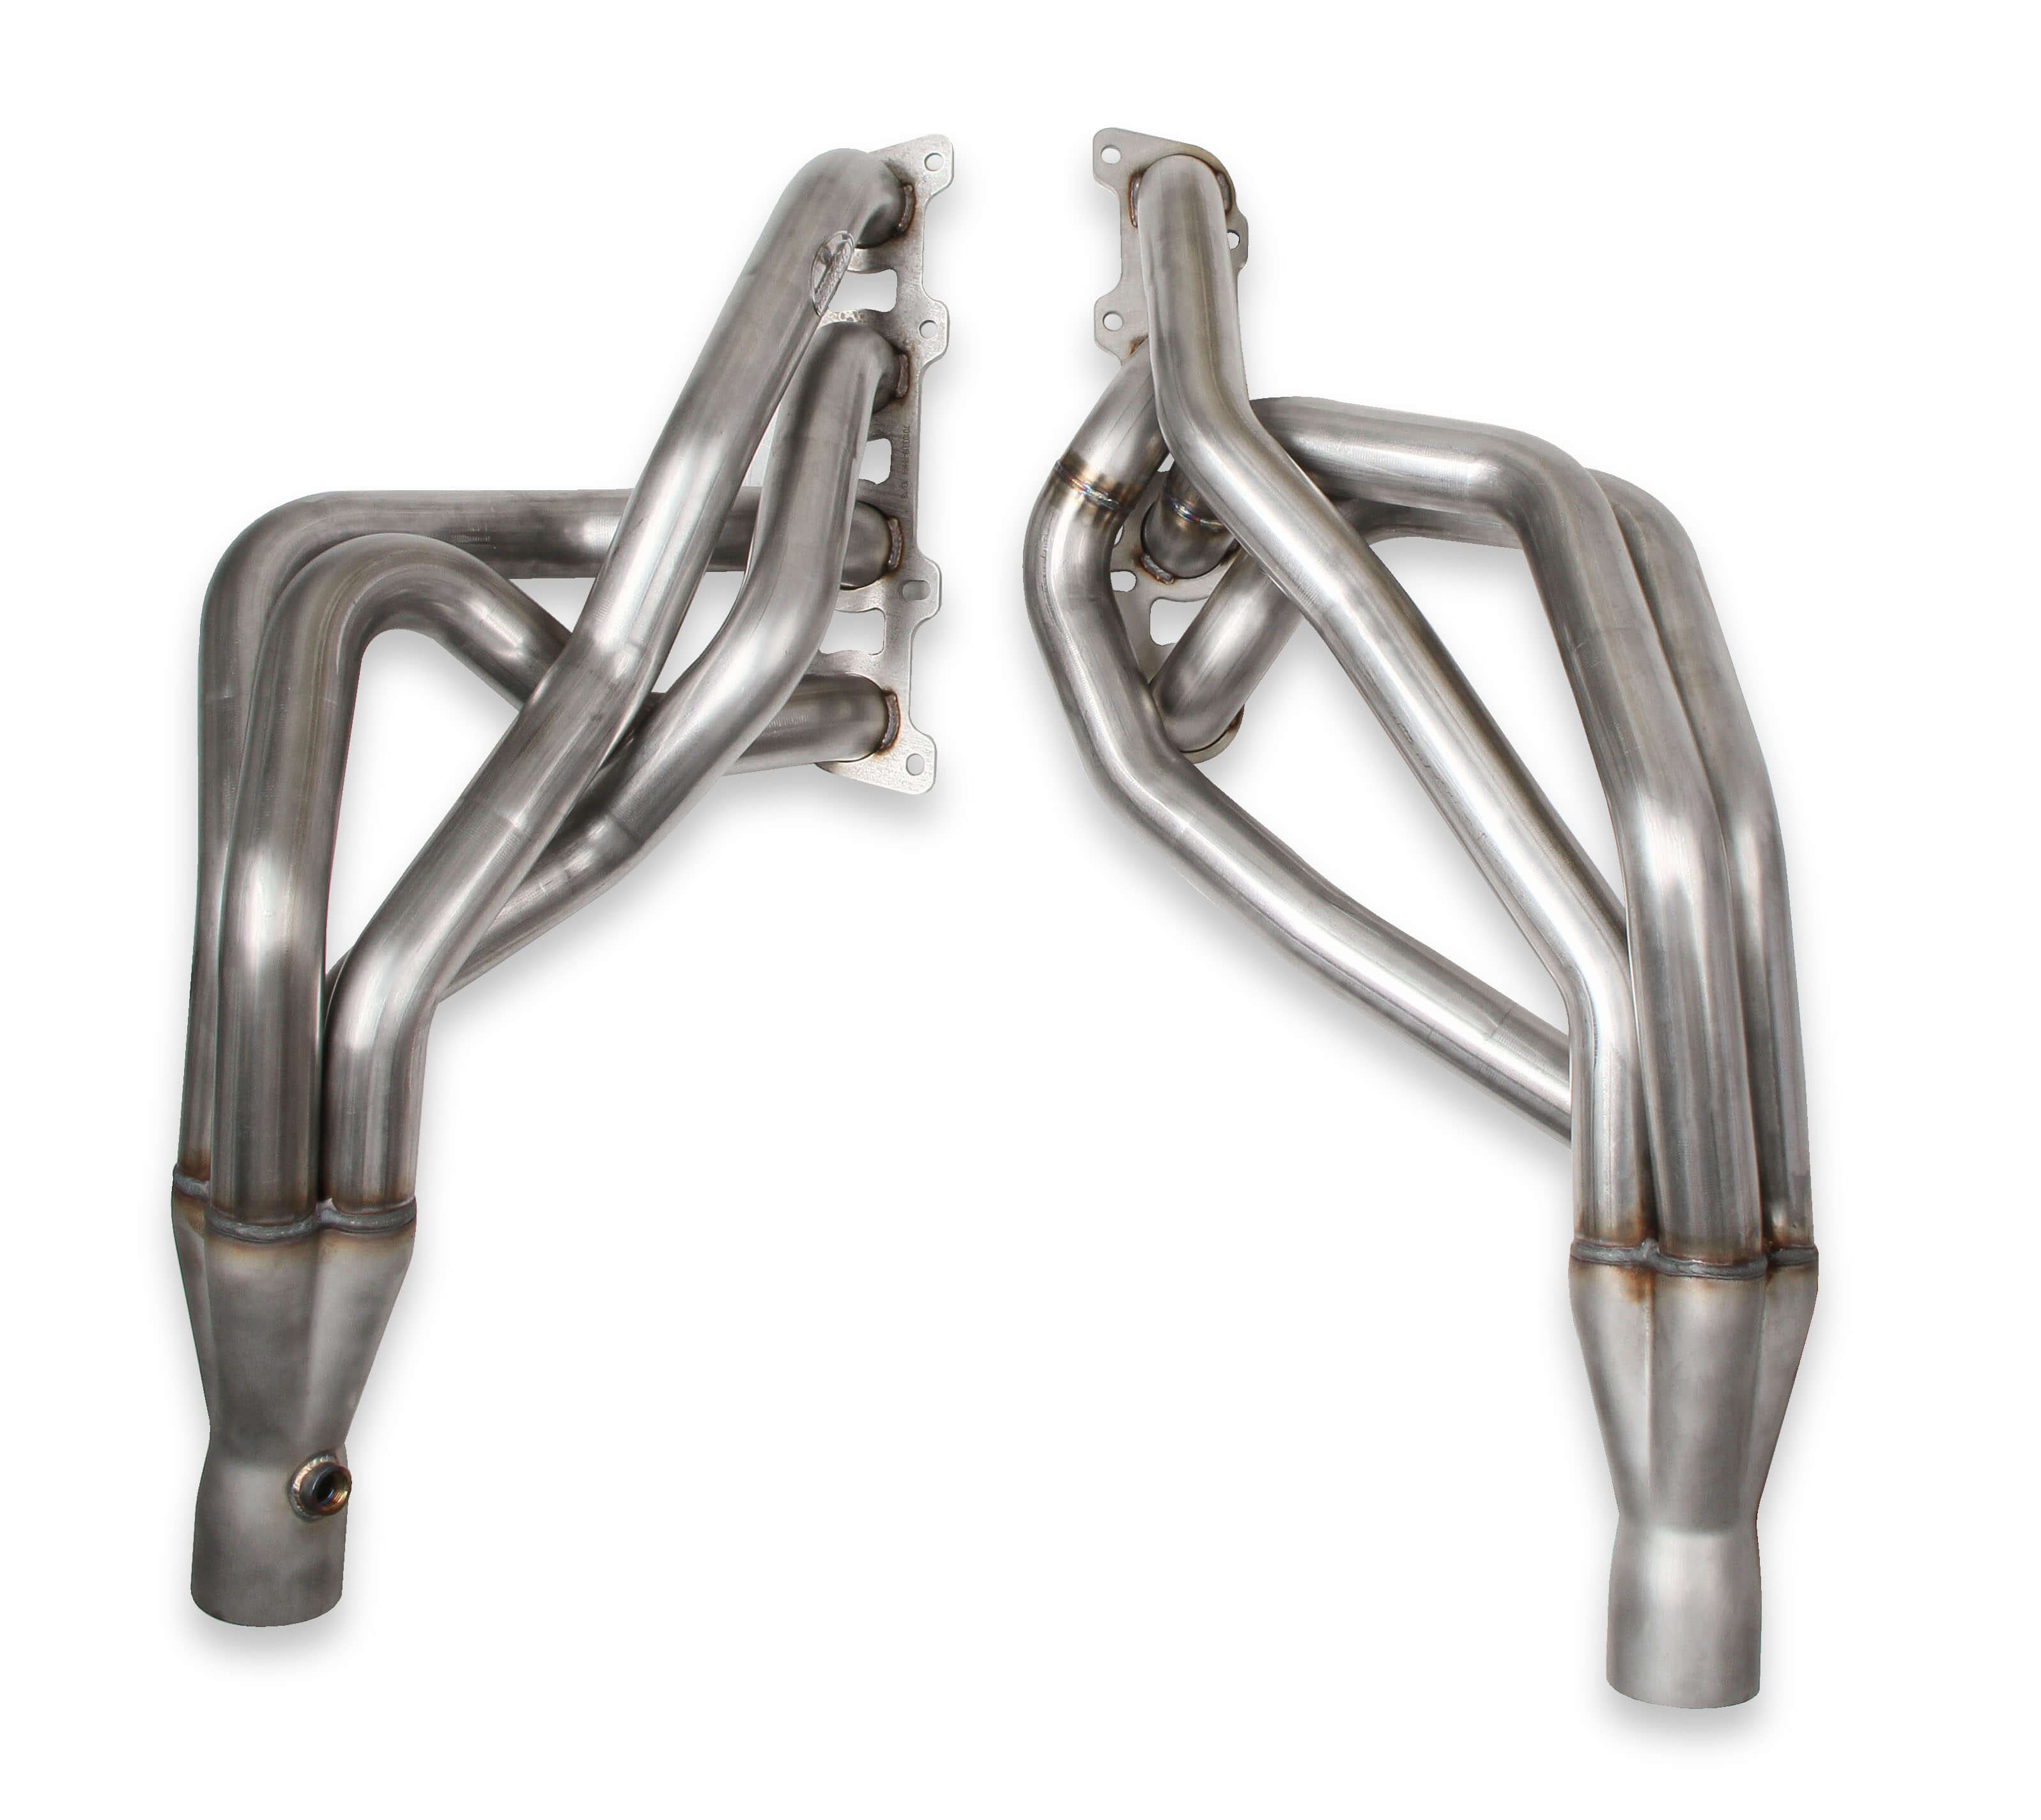 "1996-2004 Ford Mustang Hooker Blackheart 1 7/8"" Long Tube Headers - 5.0 Coyote Swap"